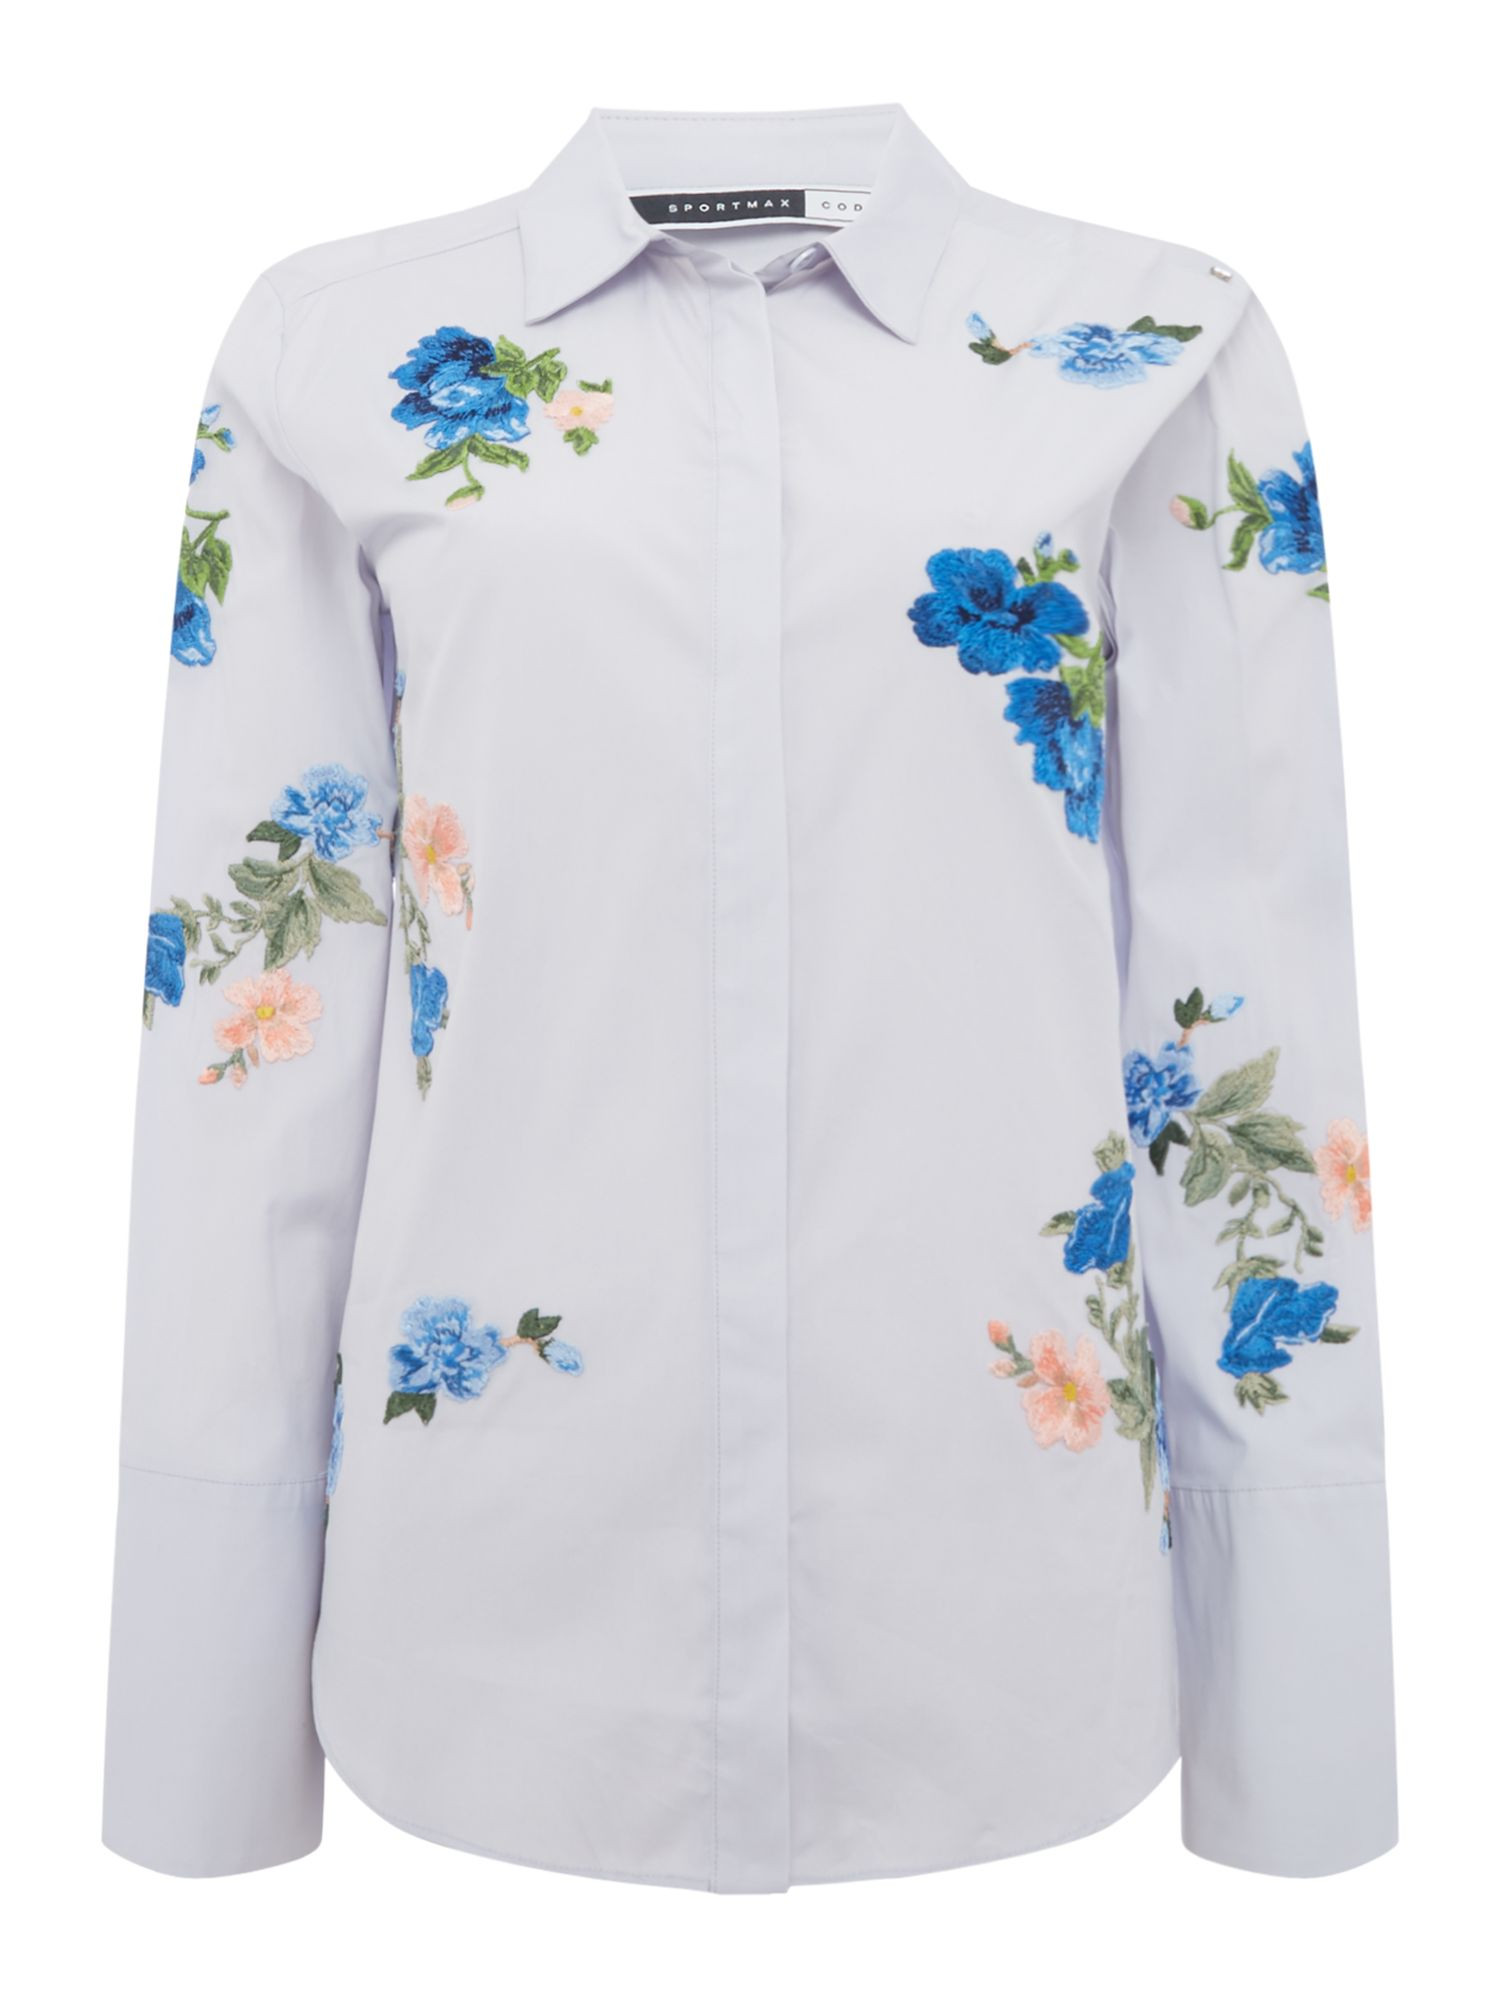 Sportmax Code Borneo embroidered floral shirt, Blue